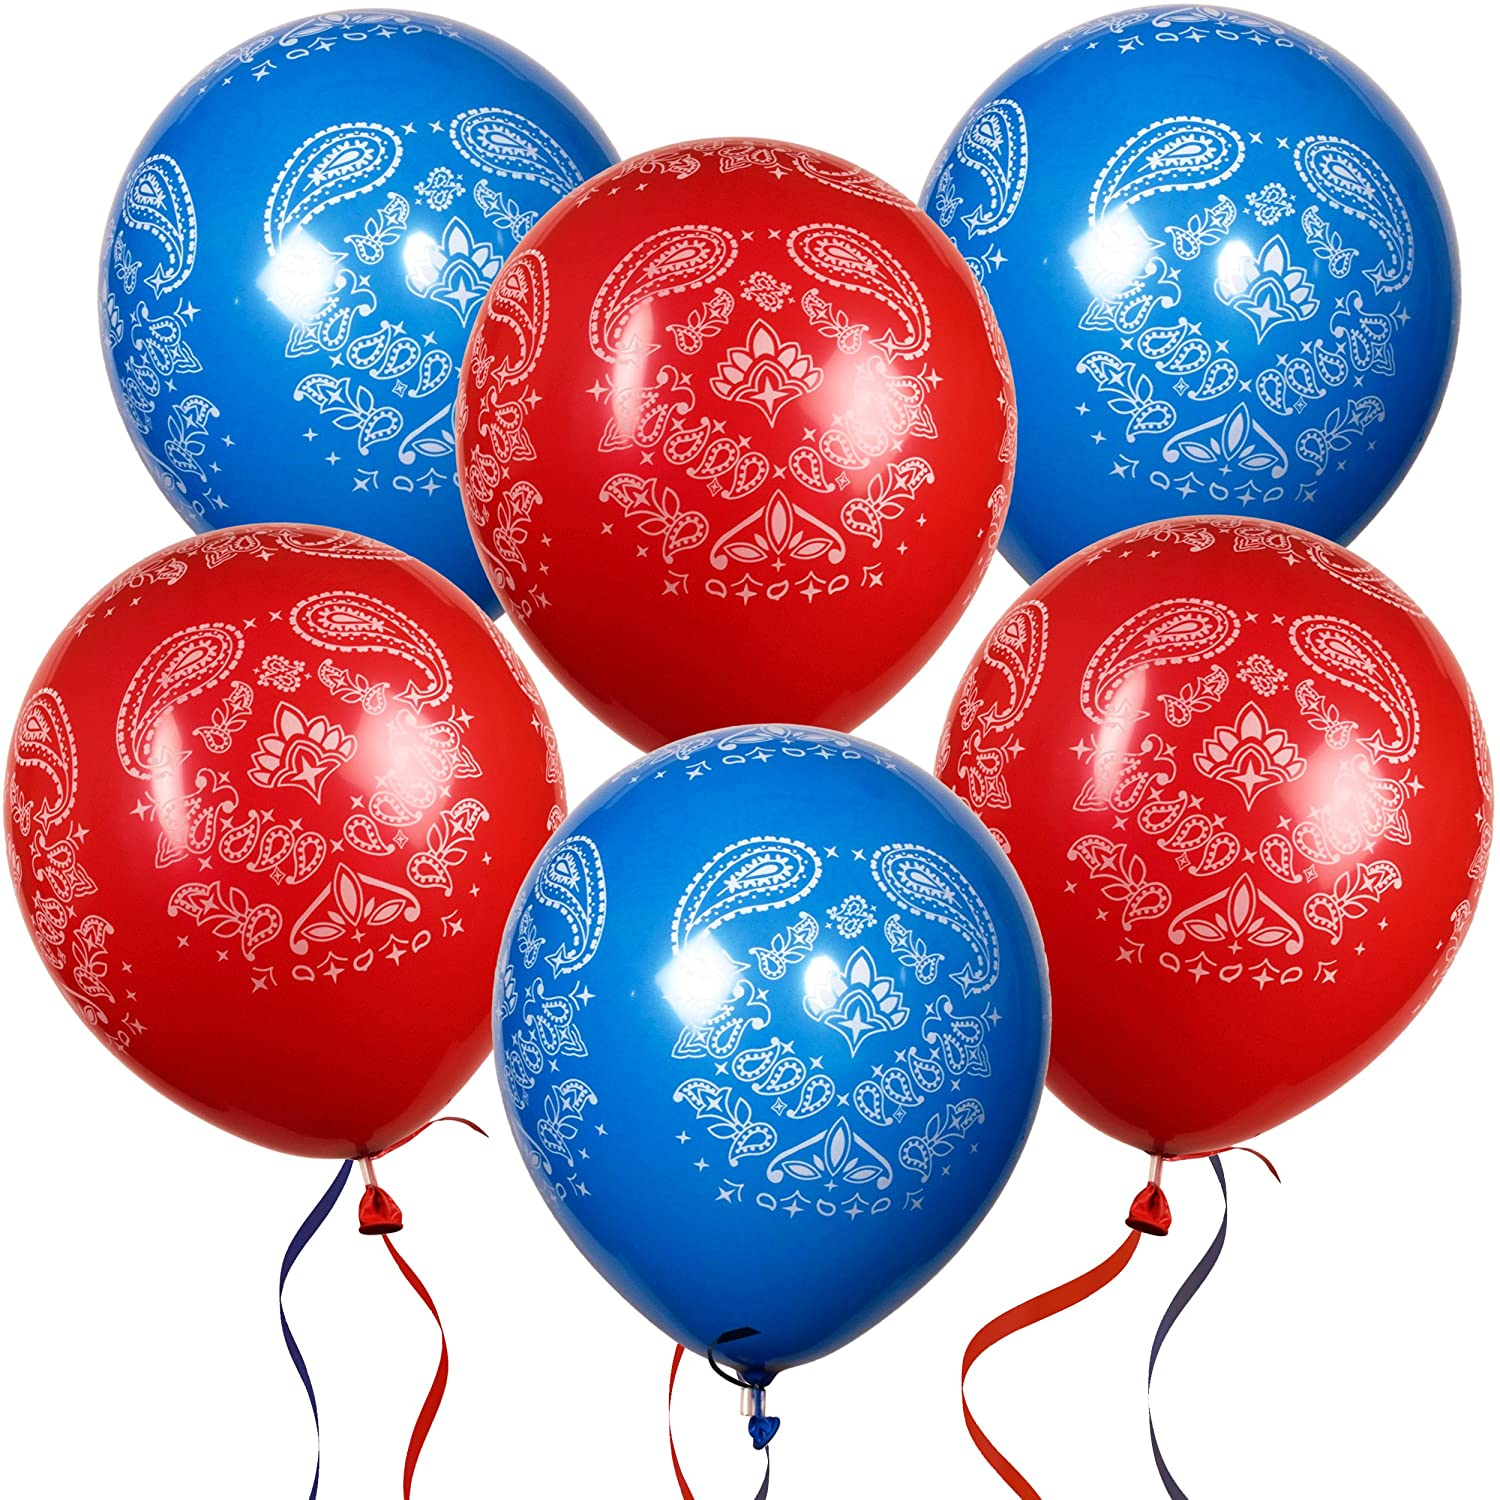 36 Bandana Balloons 12 Latex Balloon in Red and Blue for Western Cowboy Theme for Kids Birthday Party Favor Supplies Decorations by Gift Boutique